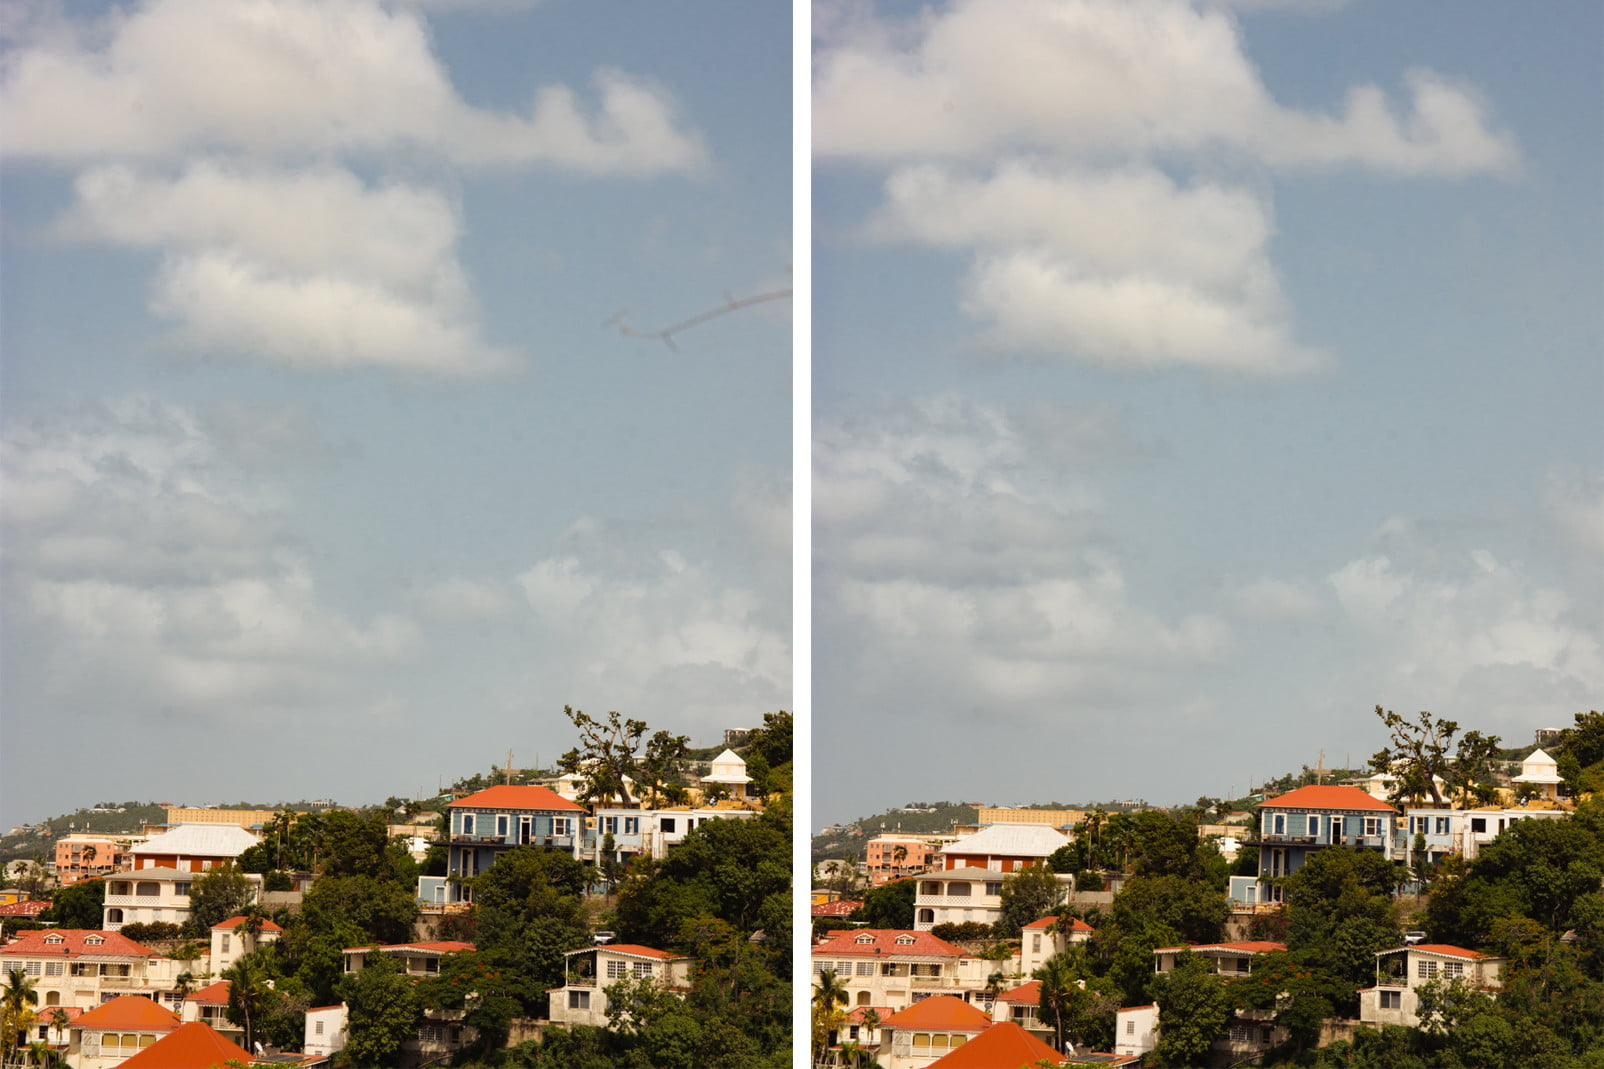 Remove photo bombs and patch holes with Photoshop's new Content-Aware Fill